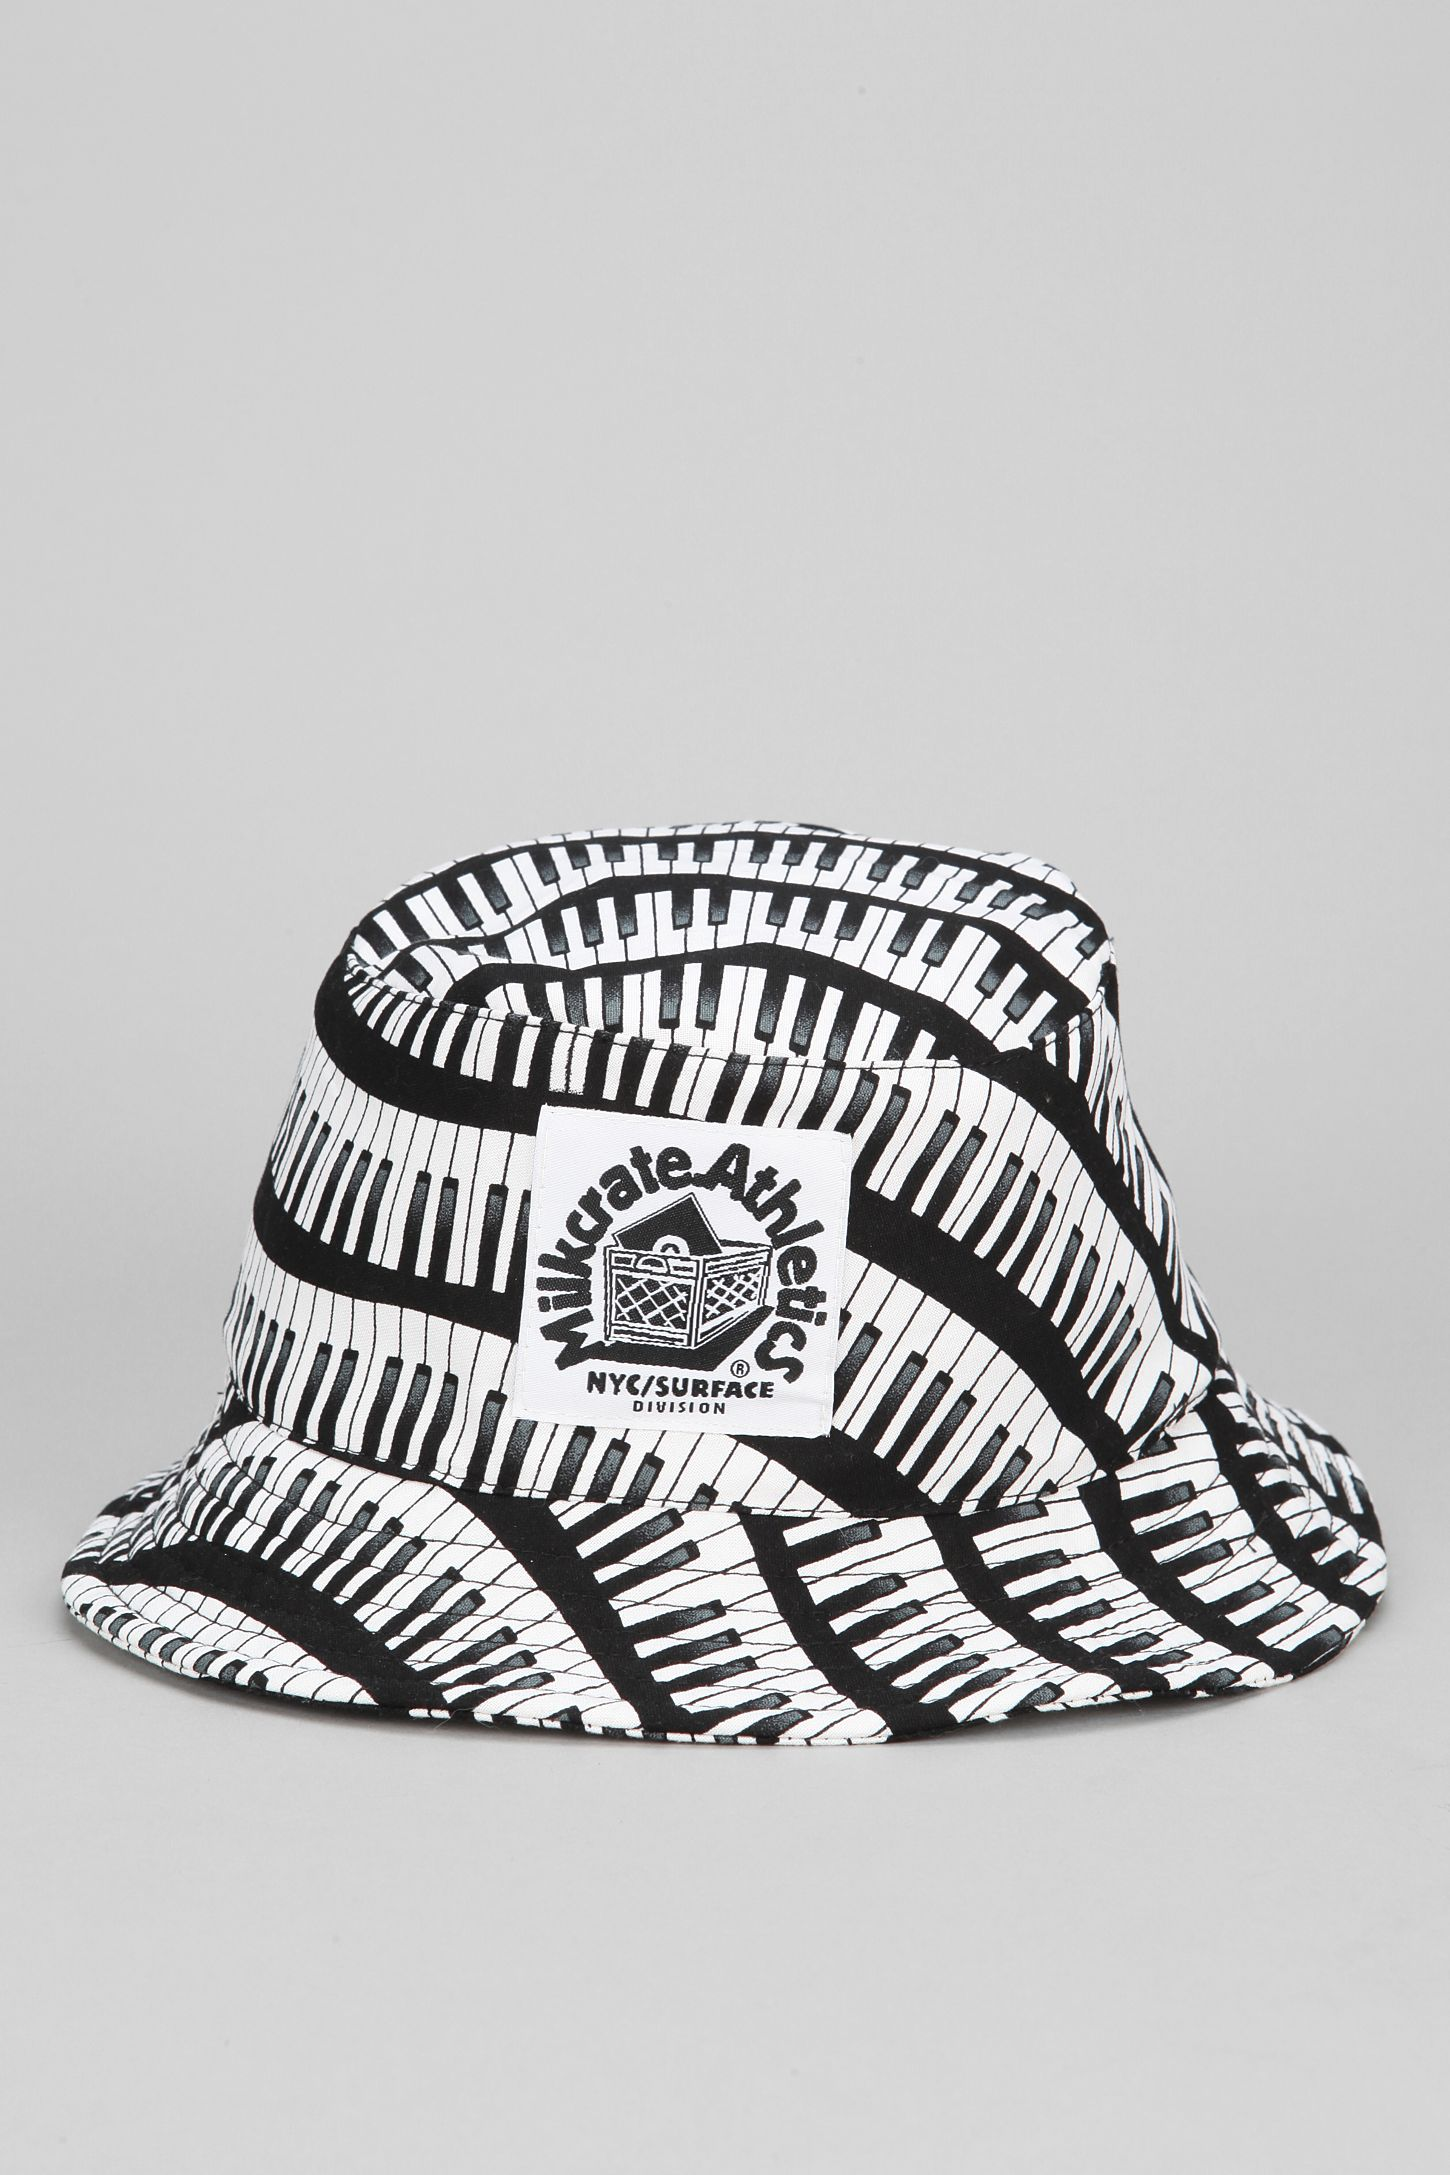 cf0e0786c9b Milkcrate Athletics Keys Bucket Hat. Tap image to zoom. Hover to zoom.  Double Tap to Zoom